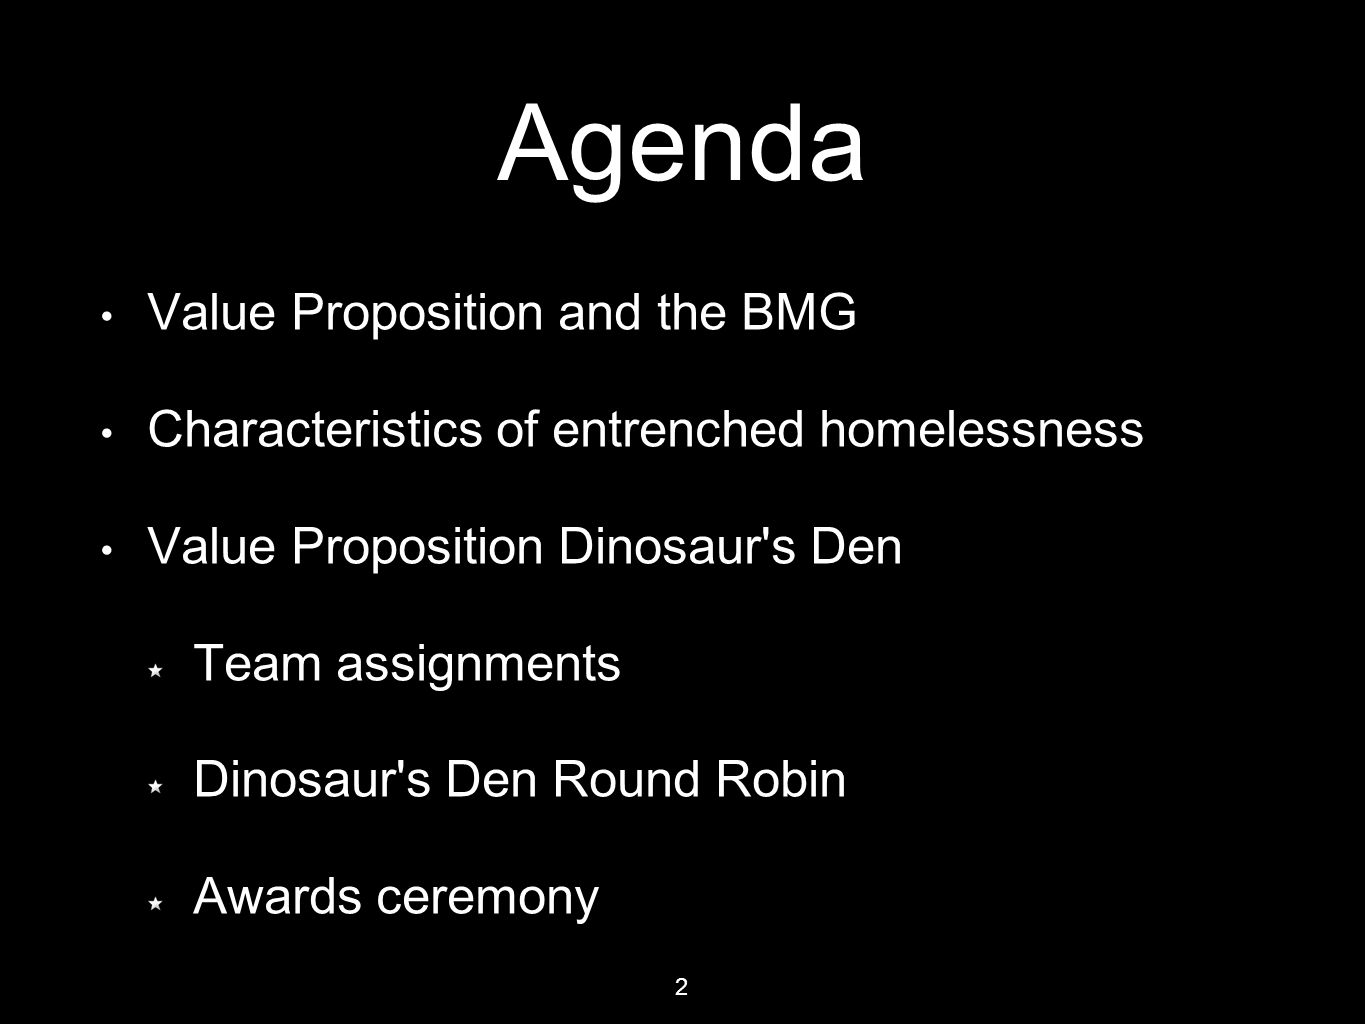 Agenda Value Proposition and the BMG Characteristics of entrenched homelessness Value Proposition Dinosaur's Den Team assignments Dinosaur's Den Round